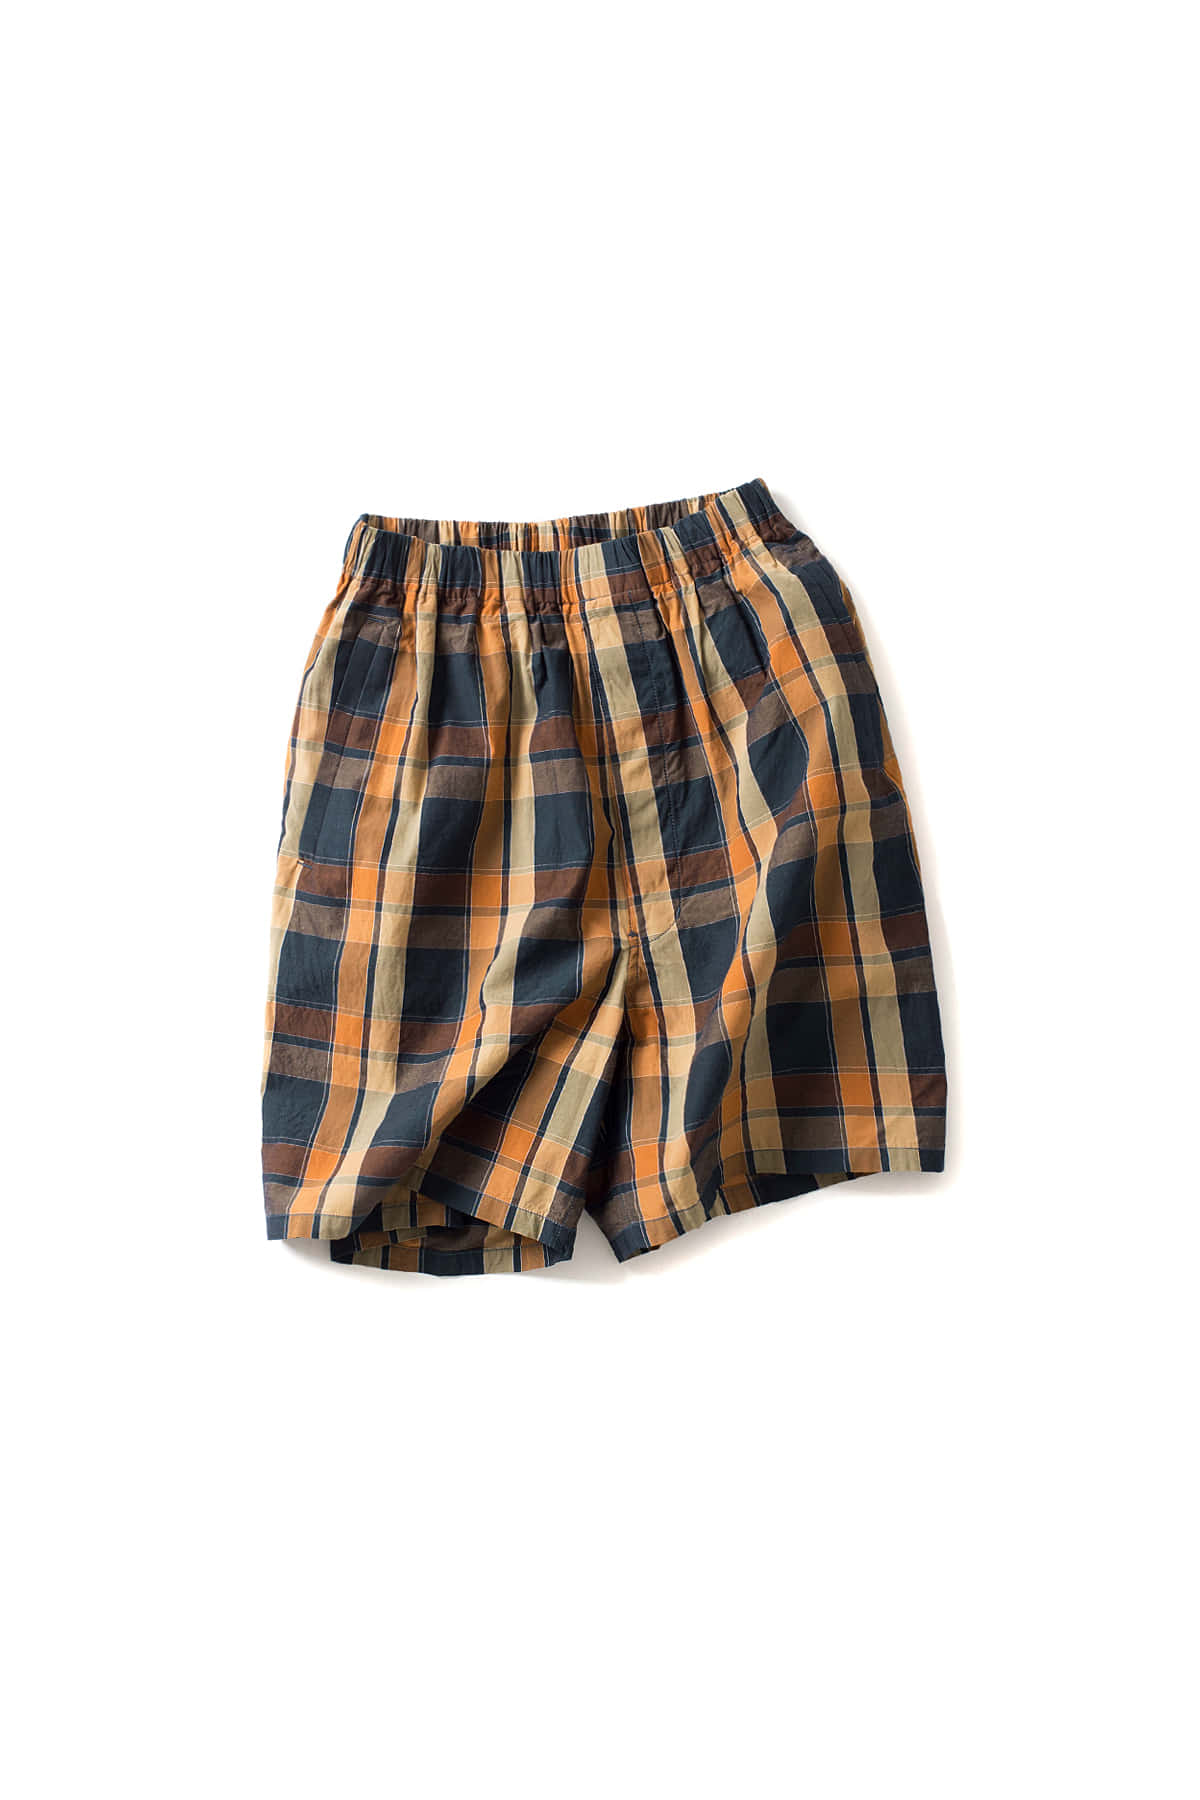 Kaptain Sunshine : Athletic Shorts (Brown Check)